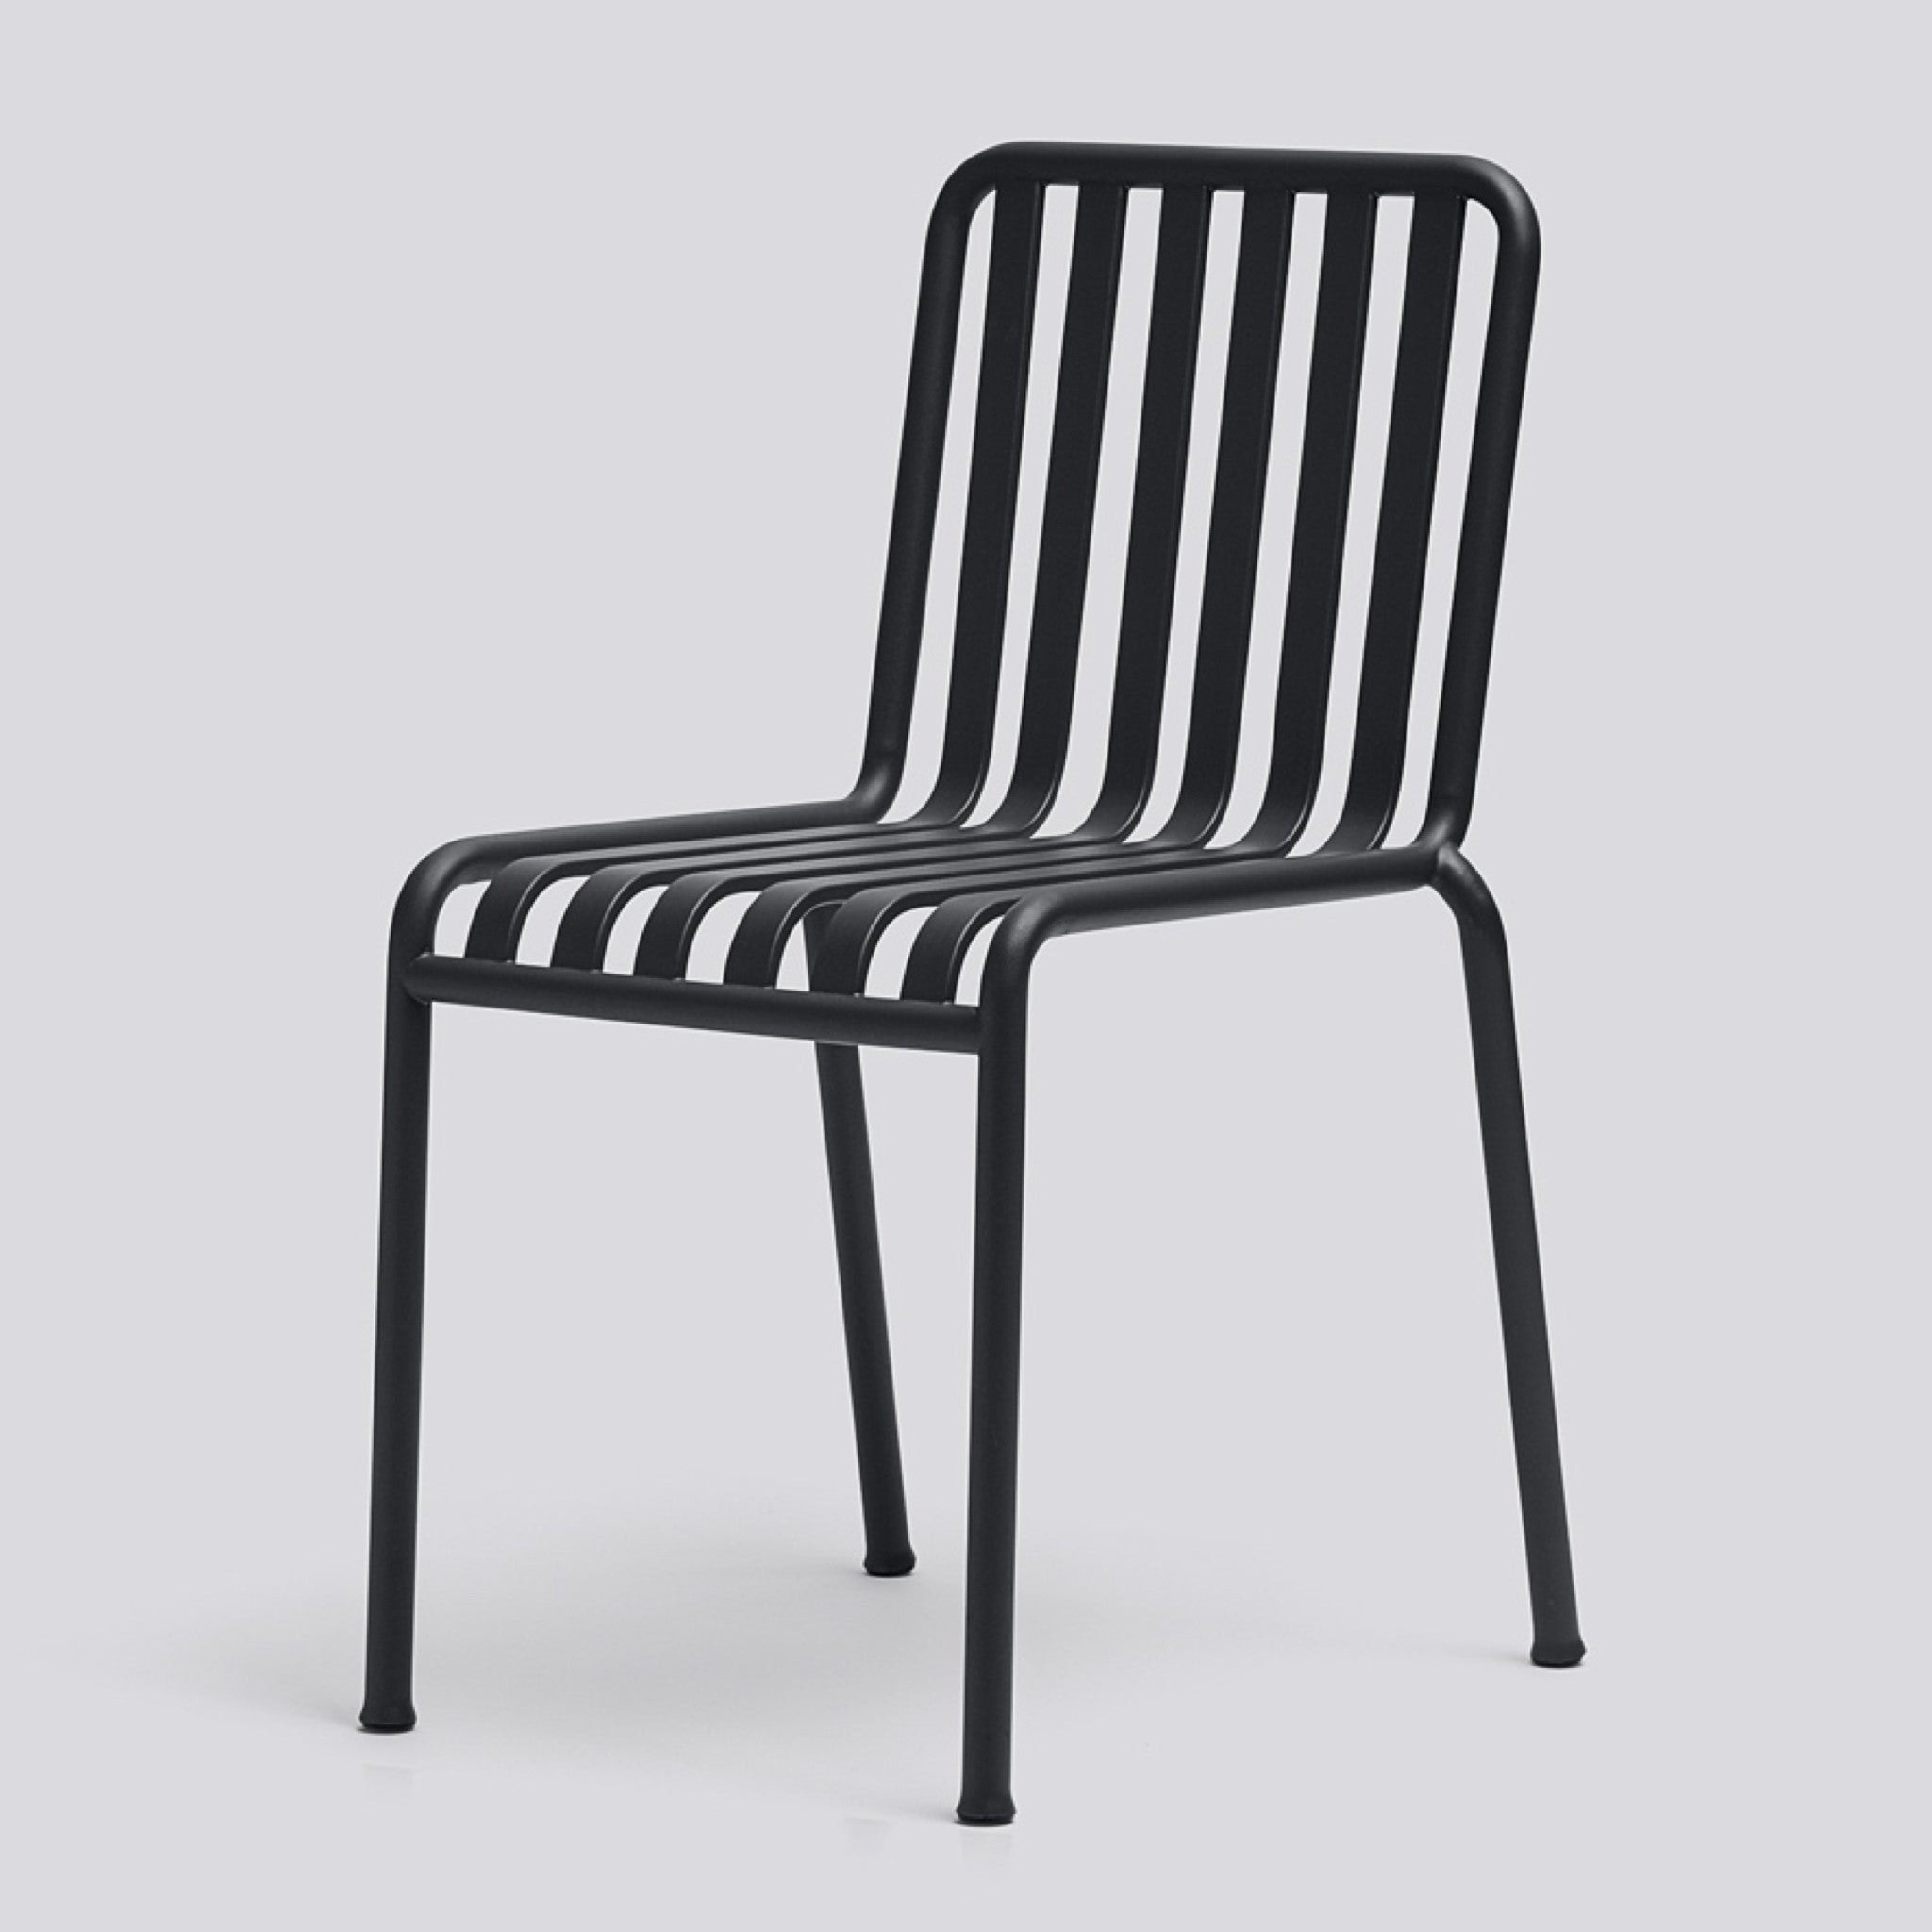 Palissade Chair by Ronan and Erwan Bouroullec